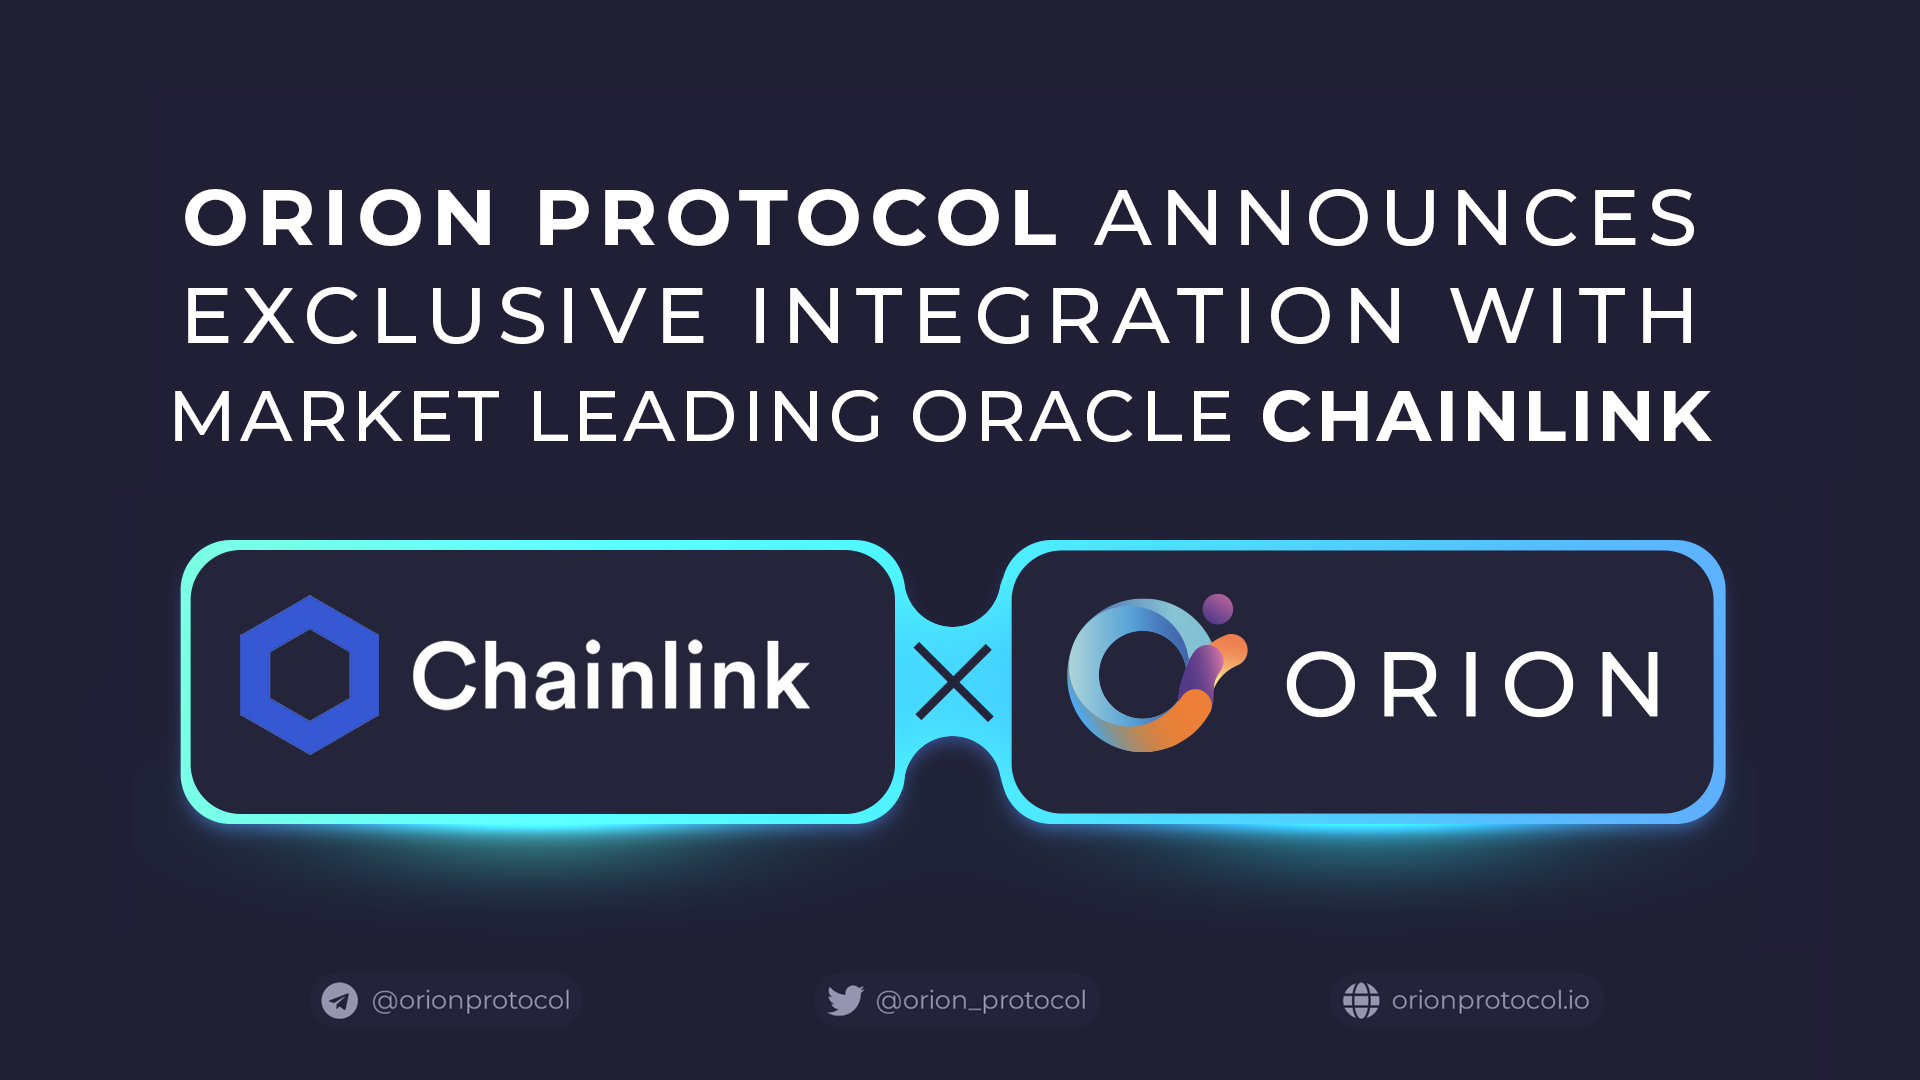 Orion Announces Exclusive Integration with Chainlink